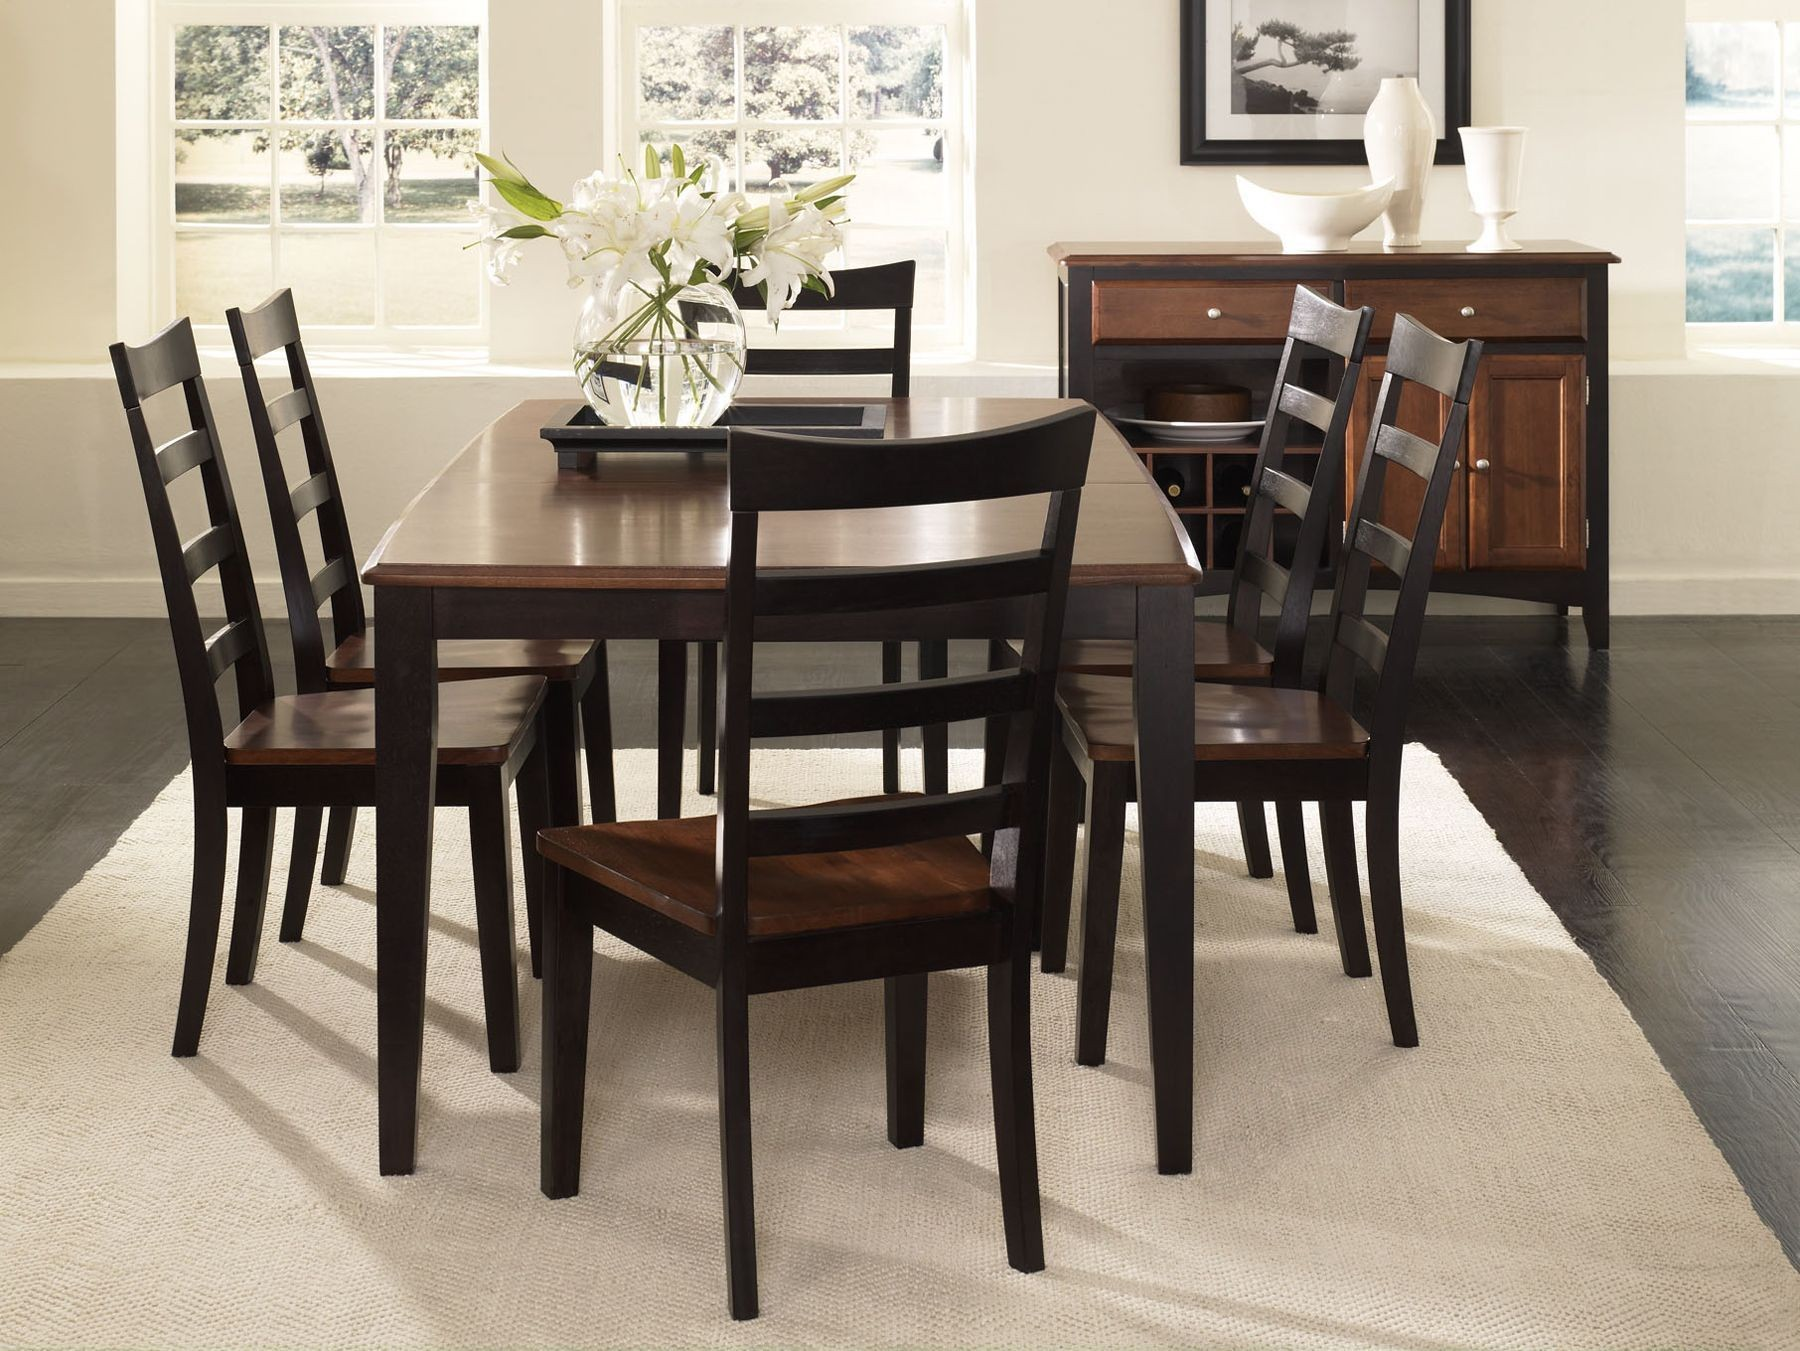 bristol point 78 oak espresso extendable rectangular dining room set btloe6320 a america. Black Bedroom Furniture Sets. Home Design Ideas